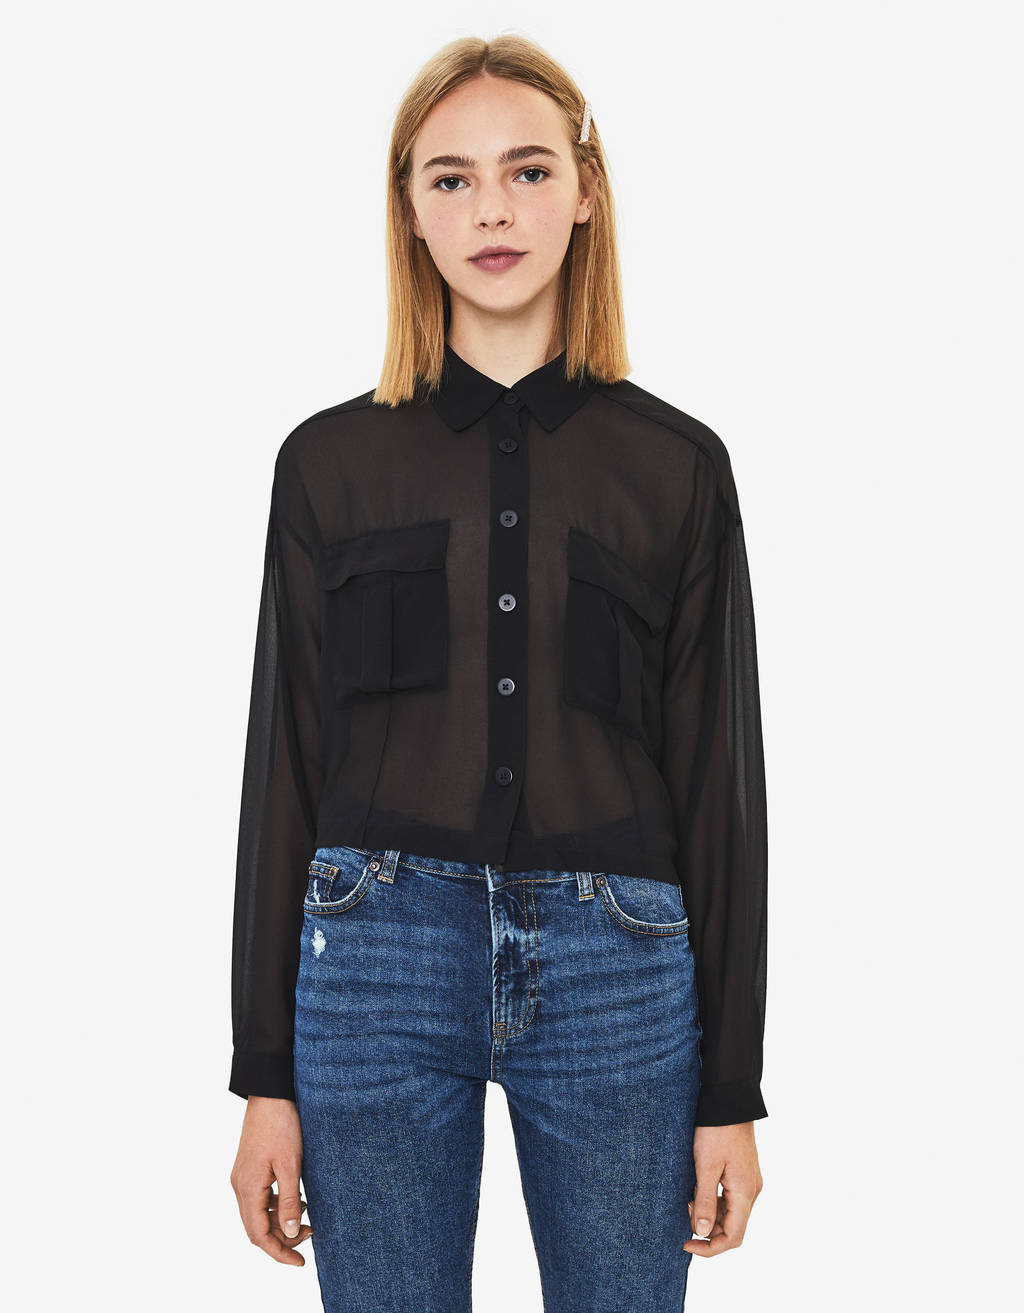 Cropped shirt with pockets